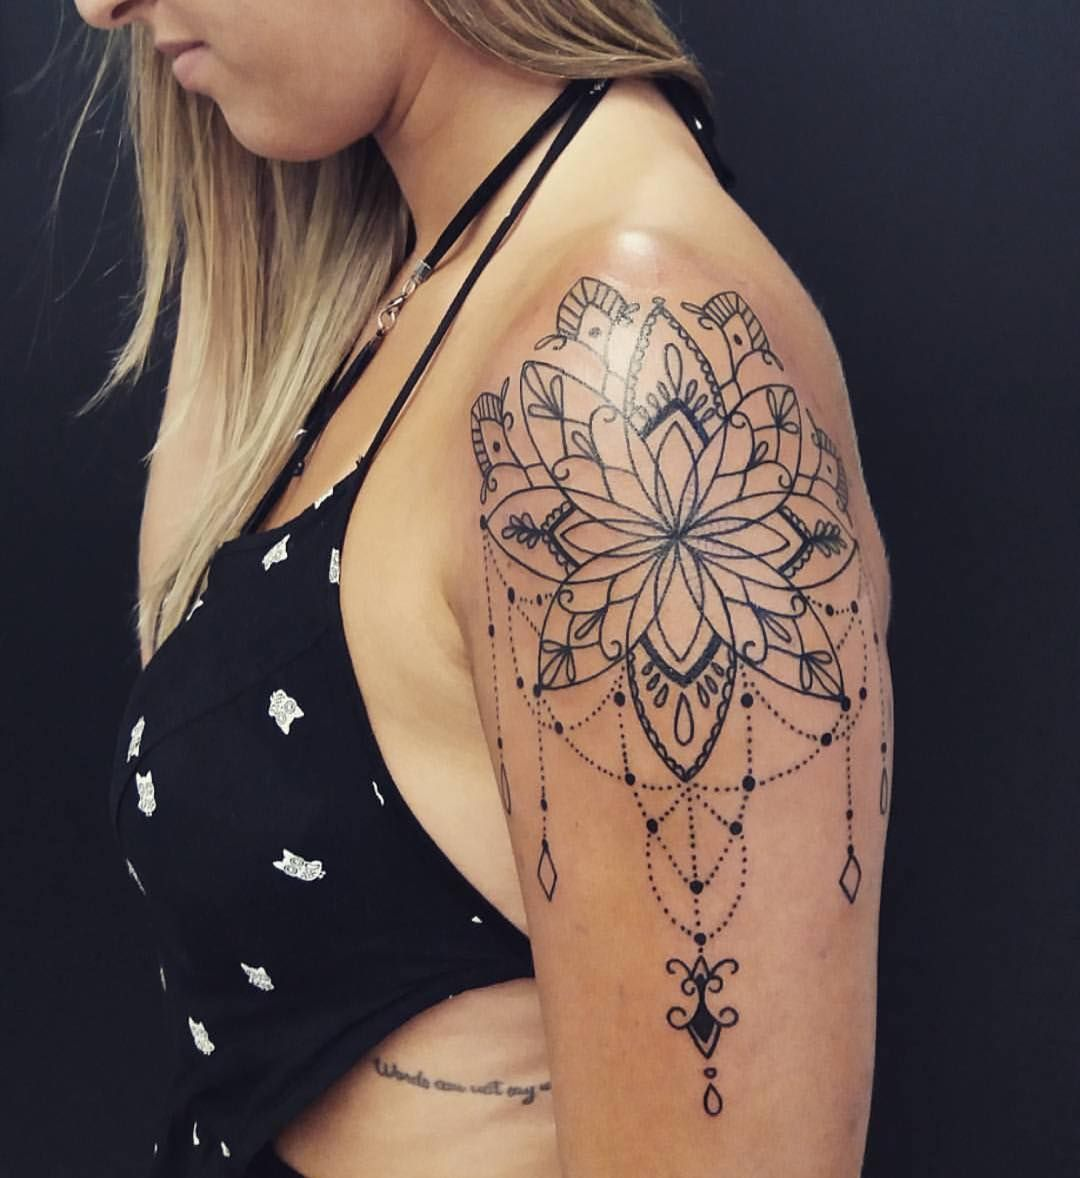 Tatts de Mary Johnson Tatuagem mandala no braço